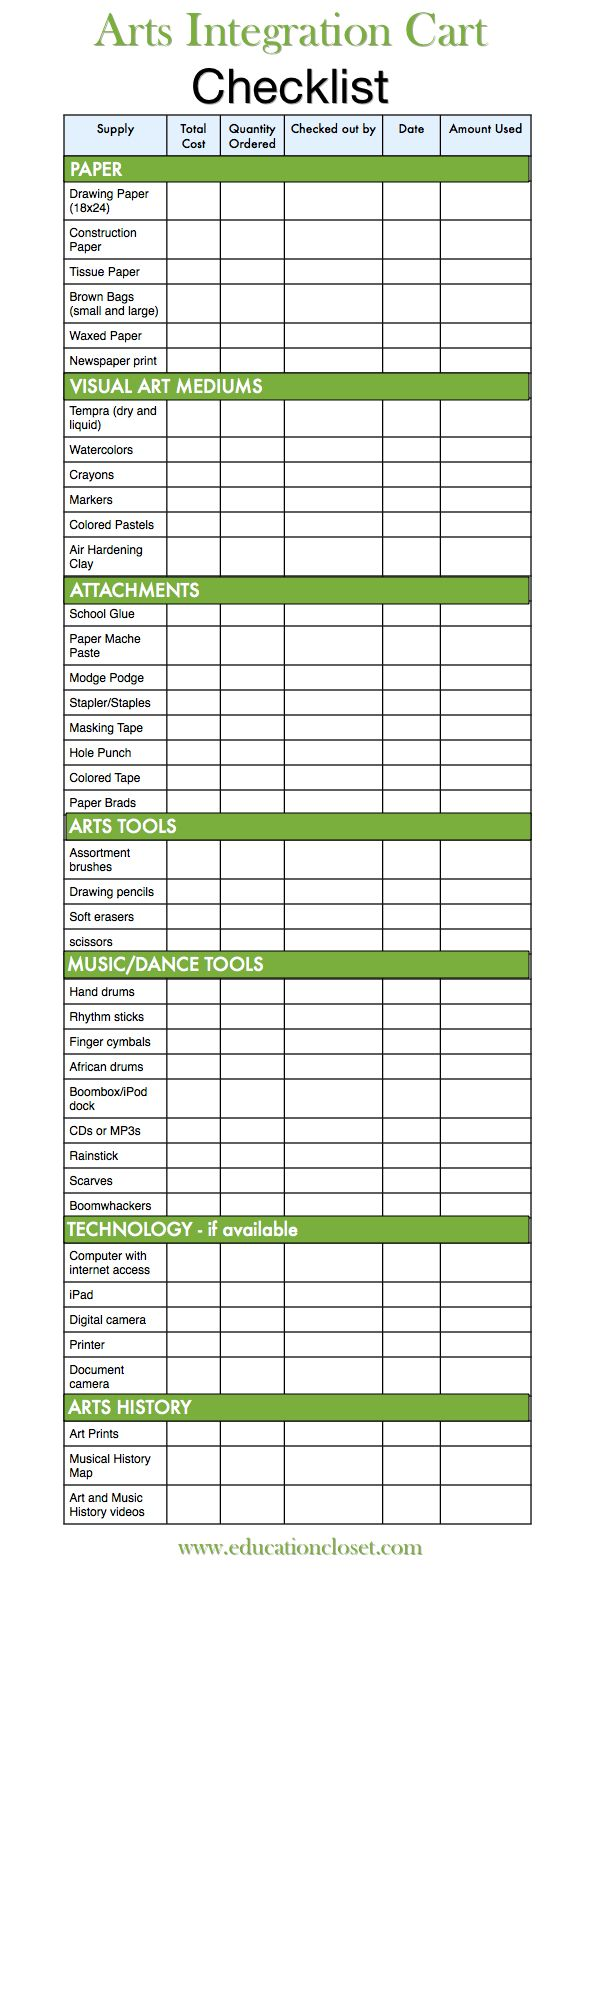 Awesome resource for organizing your Arts Integration supplies.  From www.educationcloset.com